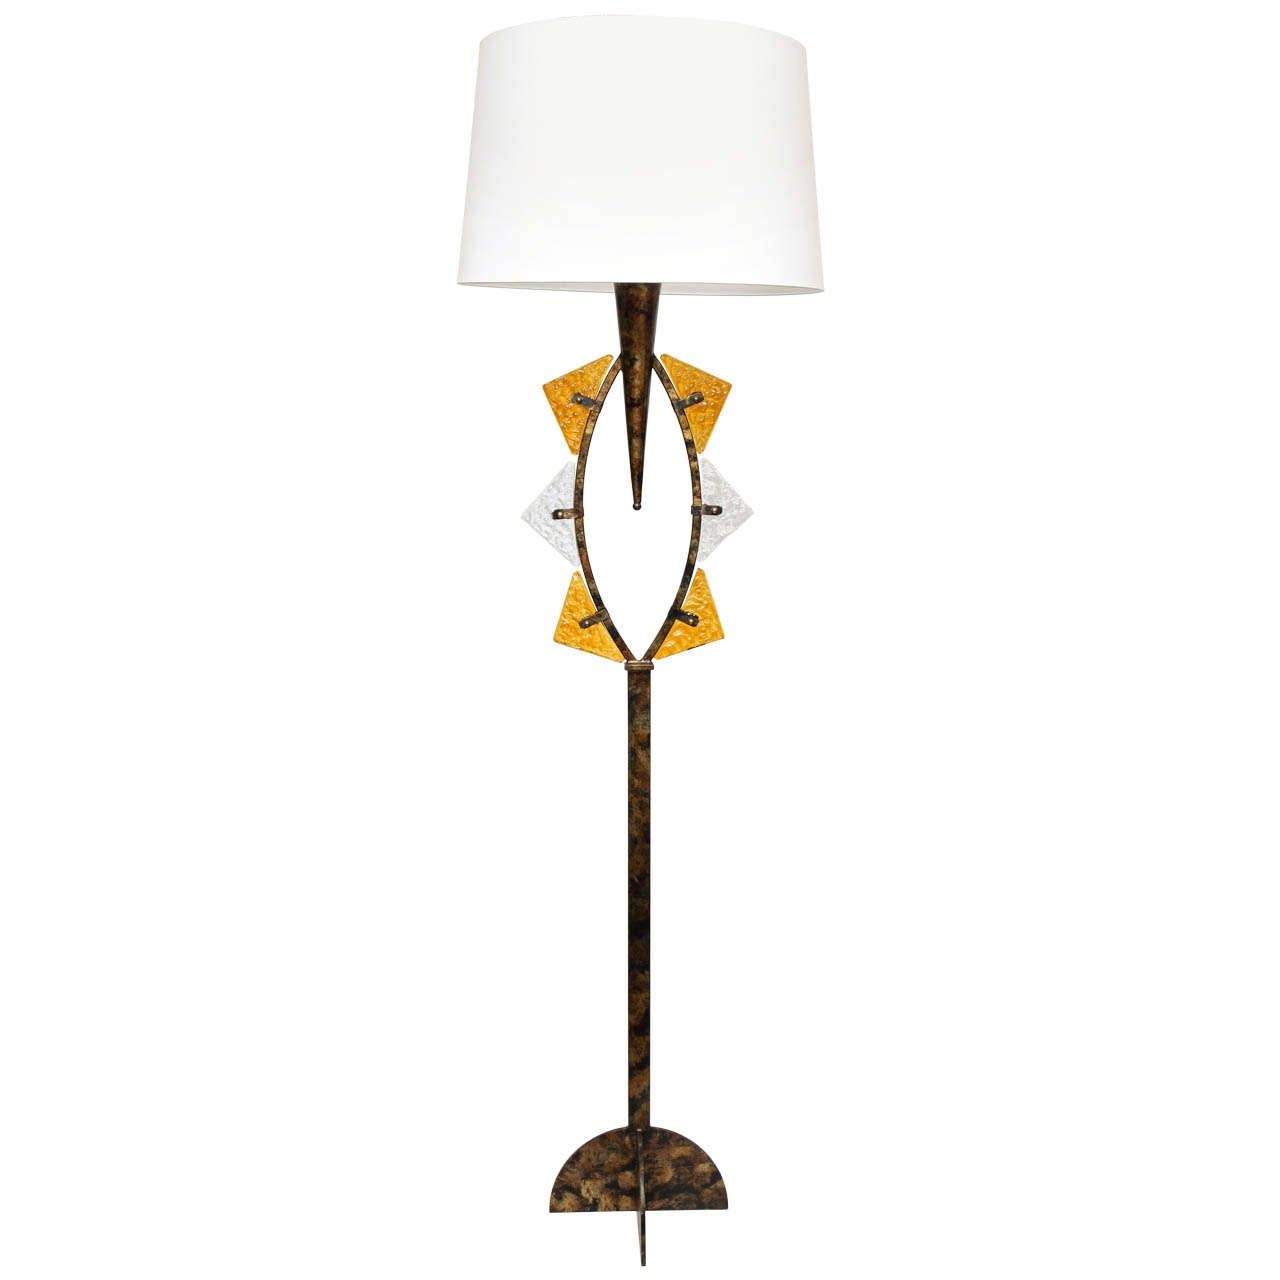 1960s Italian Brutalist Floor Lamp For Sale At 1stdibs